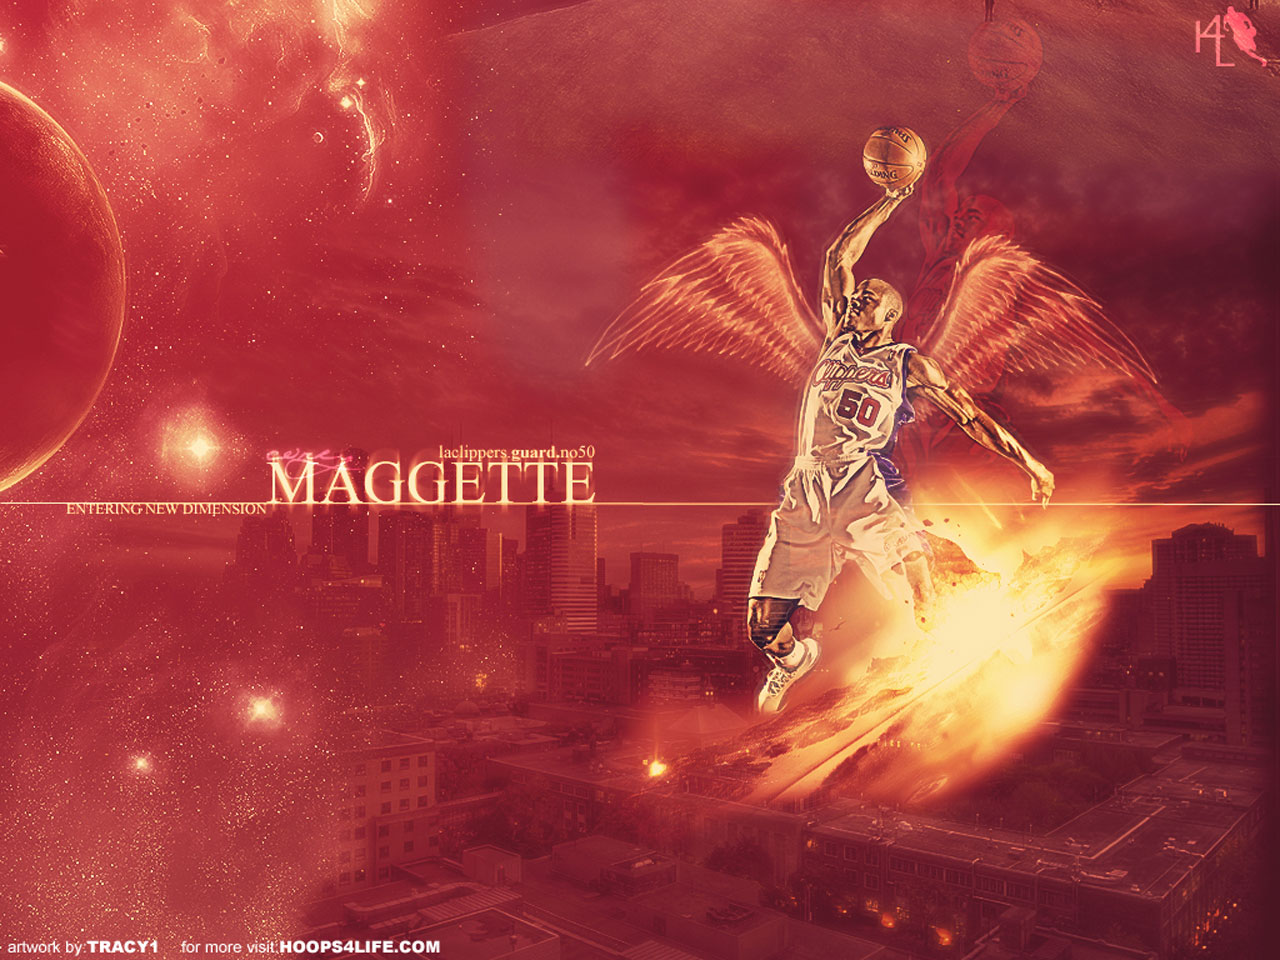 Corey Maggette Angel Dunk